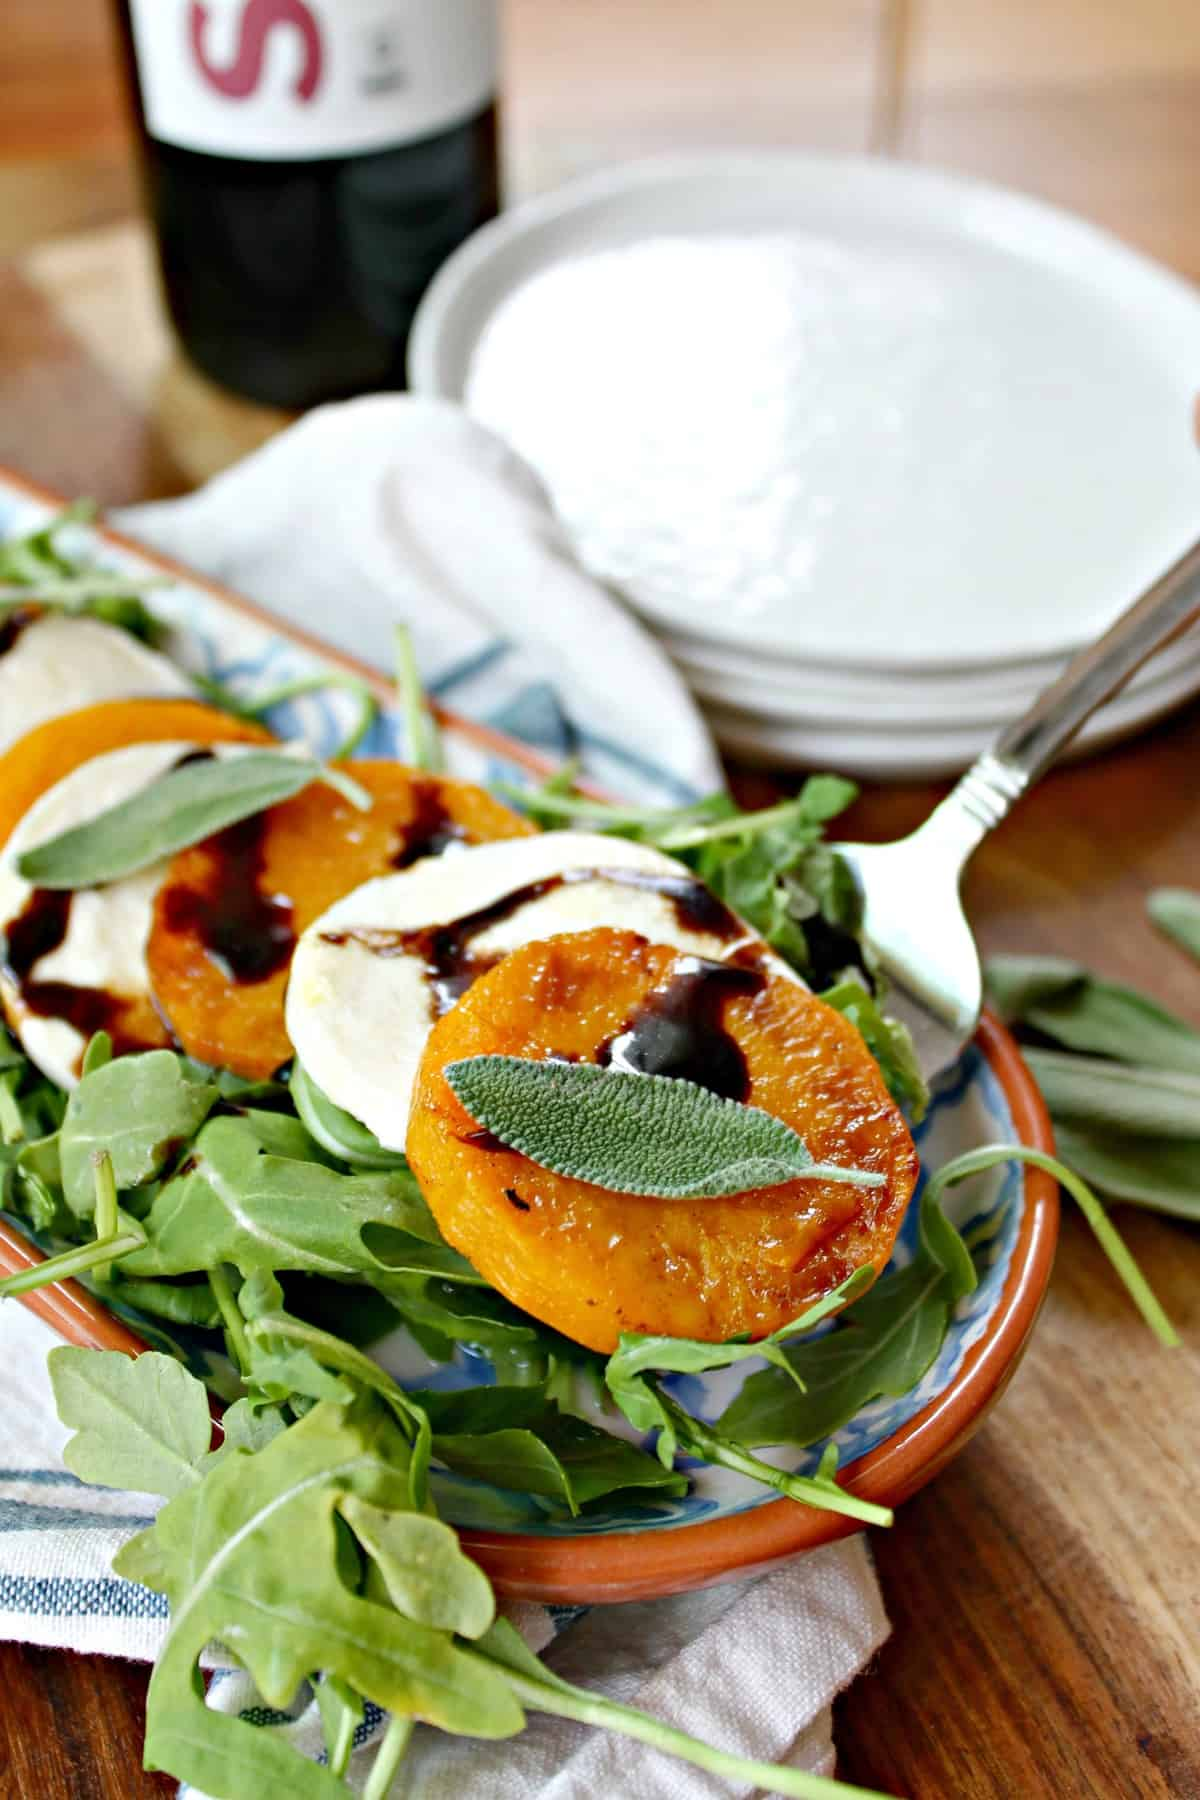 Butternut Squash Caprese Salad! A simple appetizer for autumn gatherings, roasted butternut squash salad is a fall version of the summer favorite, Caprese Salad, with tender butternut squash slices nestled between pieces of fresh mozzarella cheese and topped with earthy sage & drizzled with balsamic glaze.